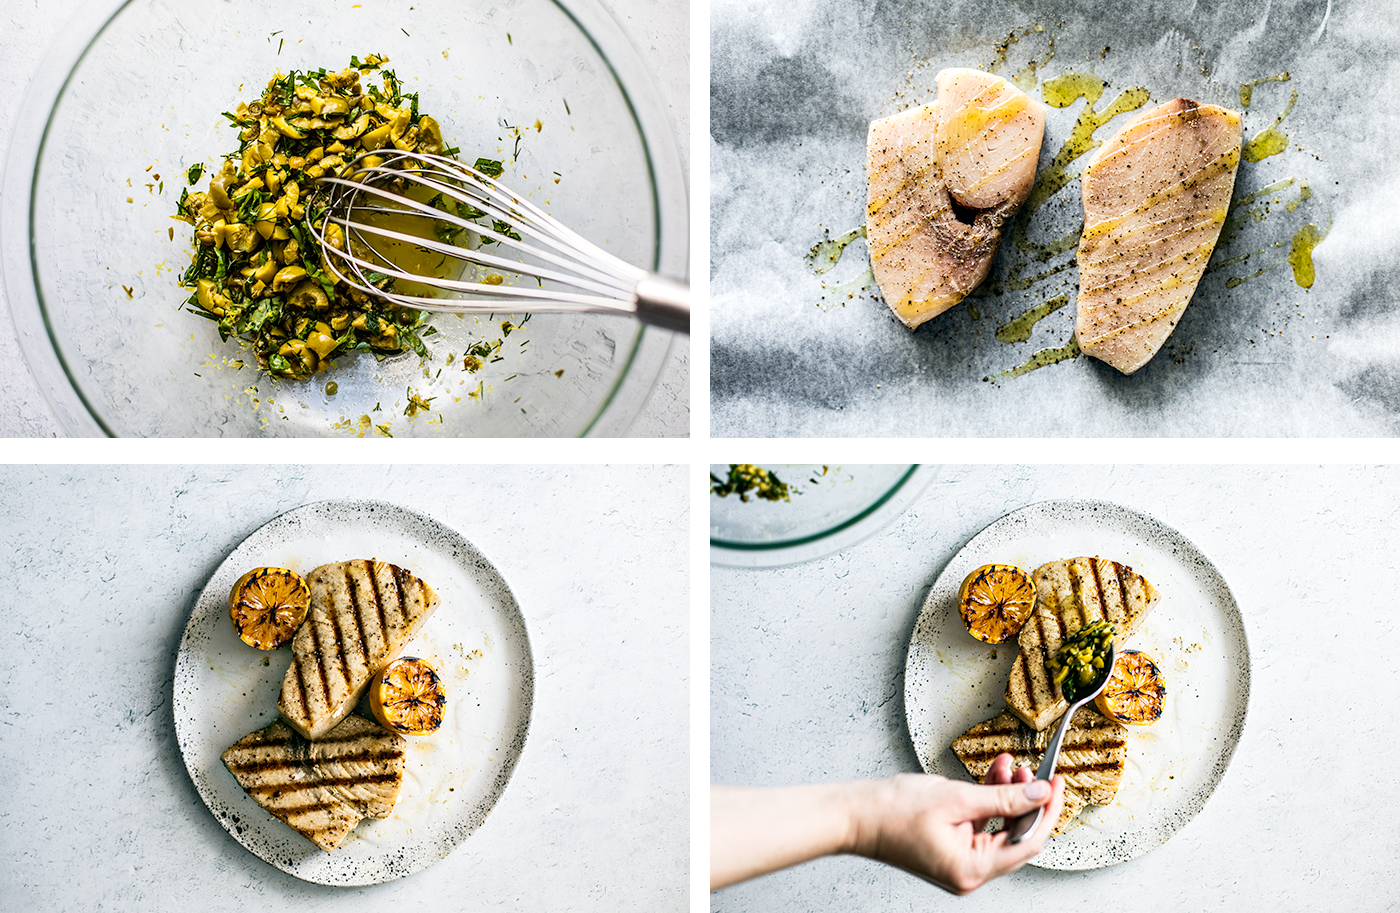 Overhead process shots of grilled swordfish and marinade being prepared.